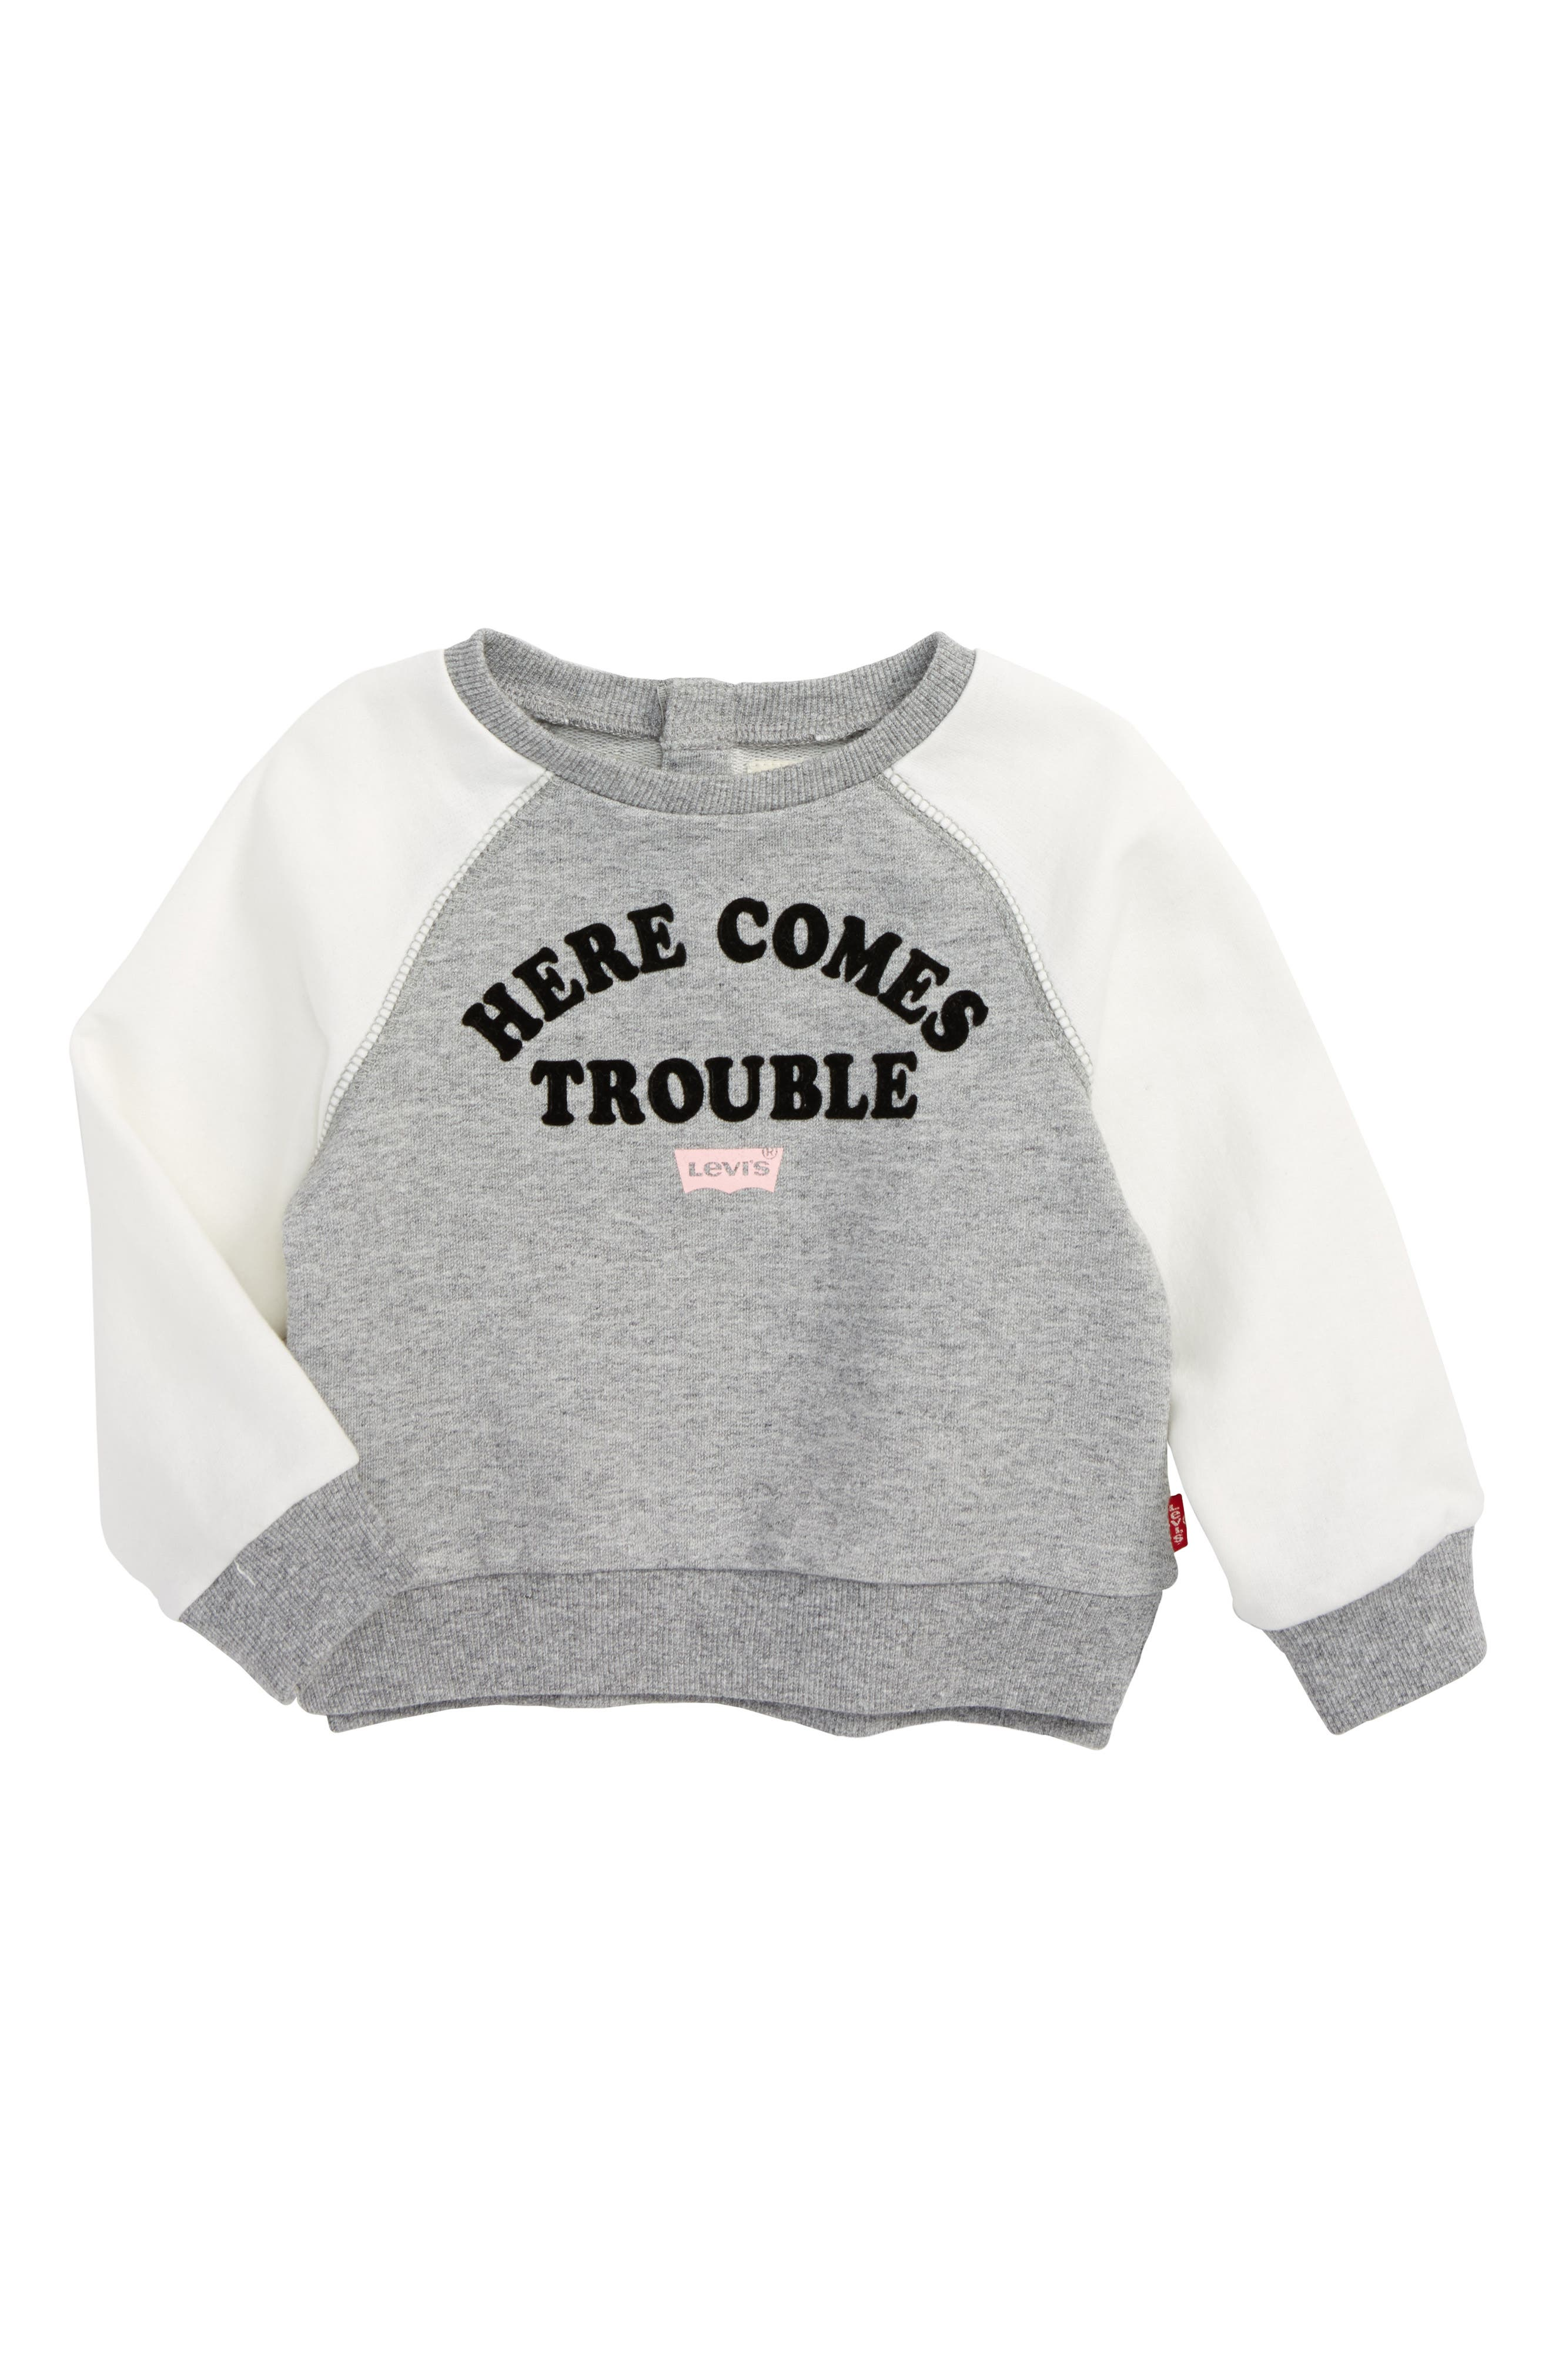 Here Comes Trouble Graphic Tee,                             Main thumbnail 1, color,